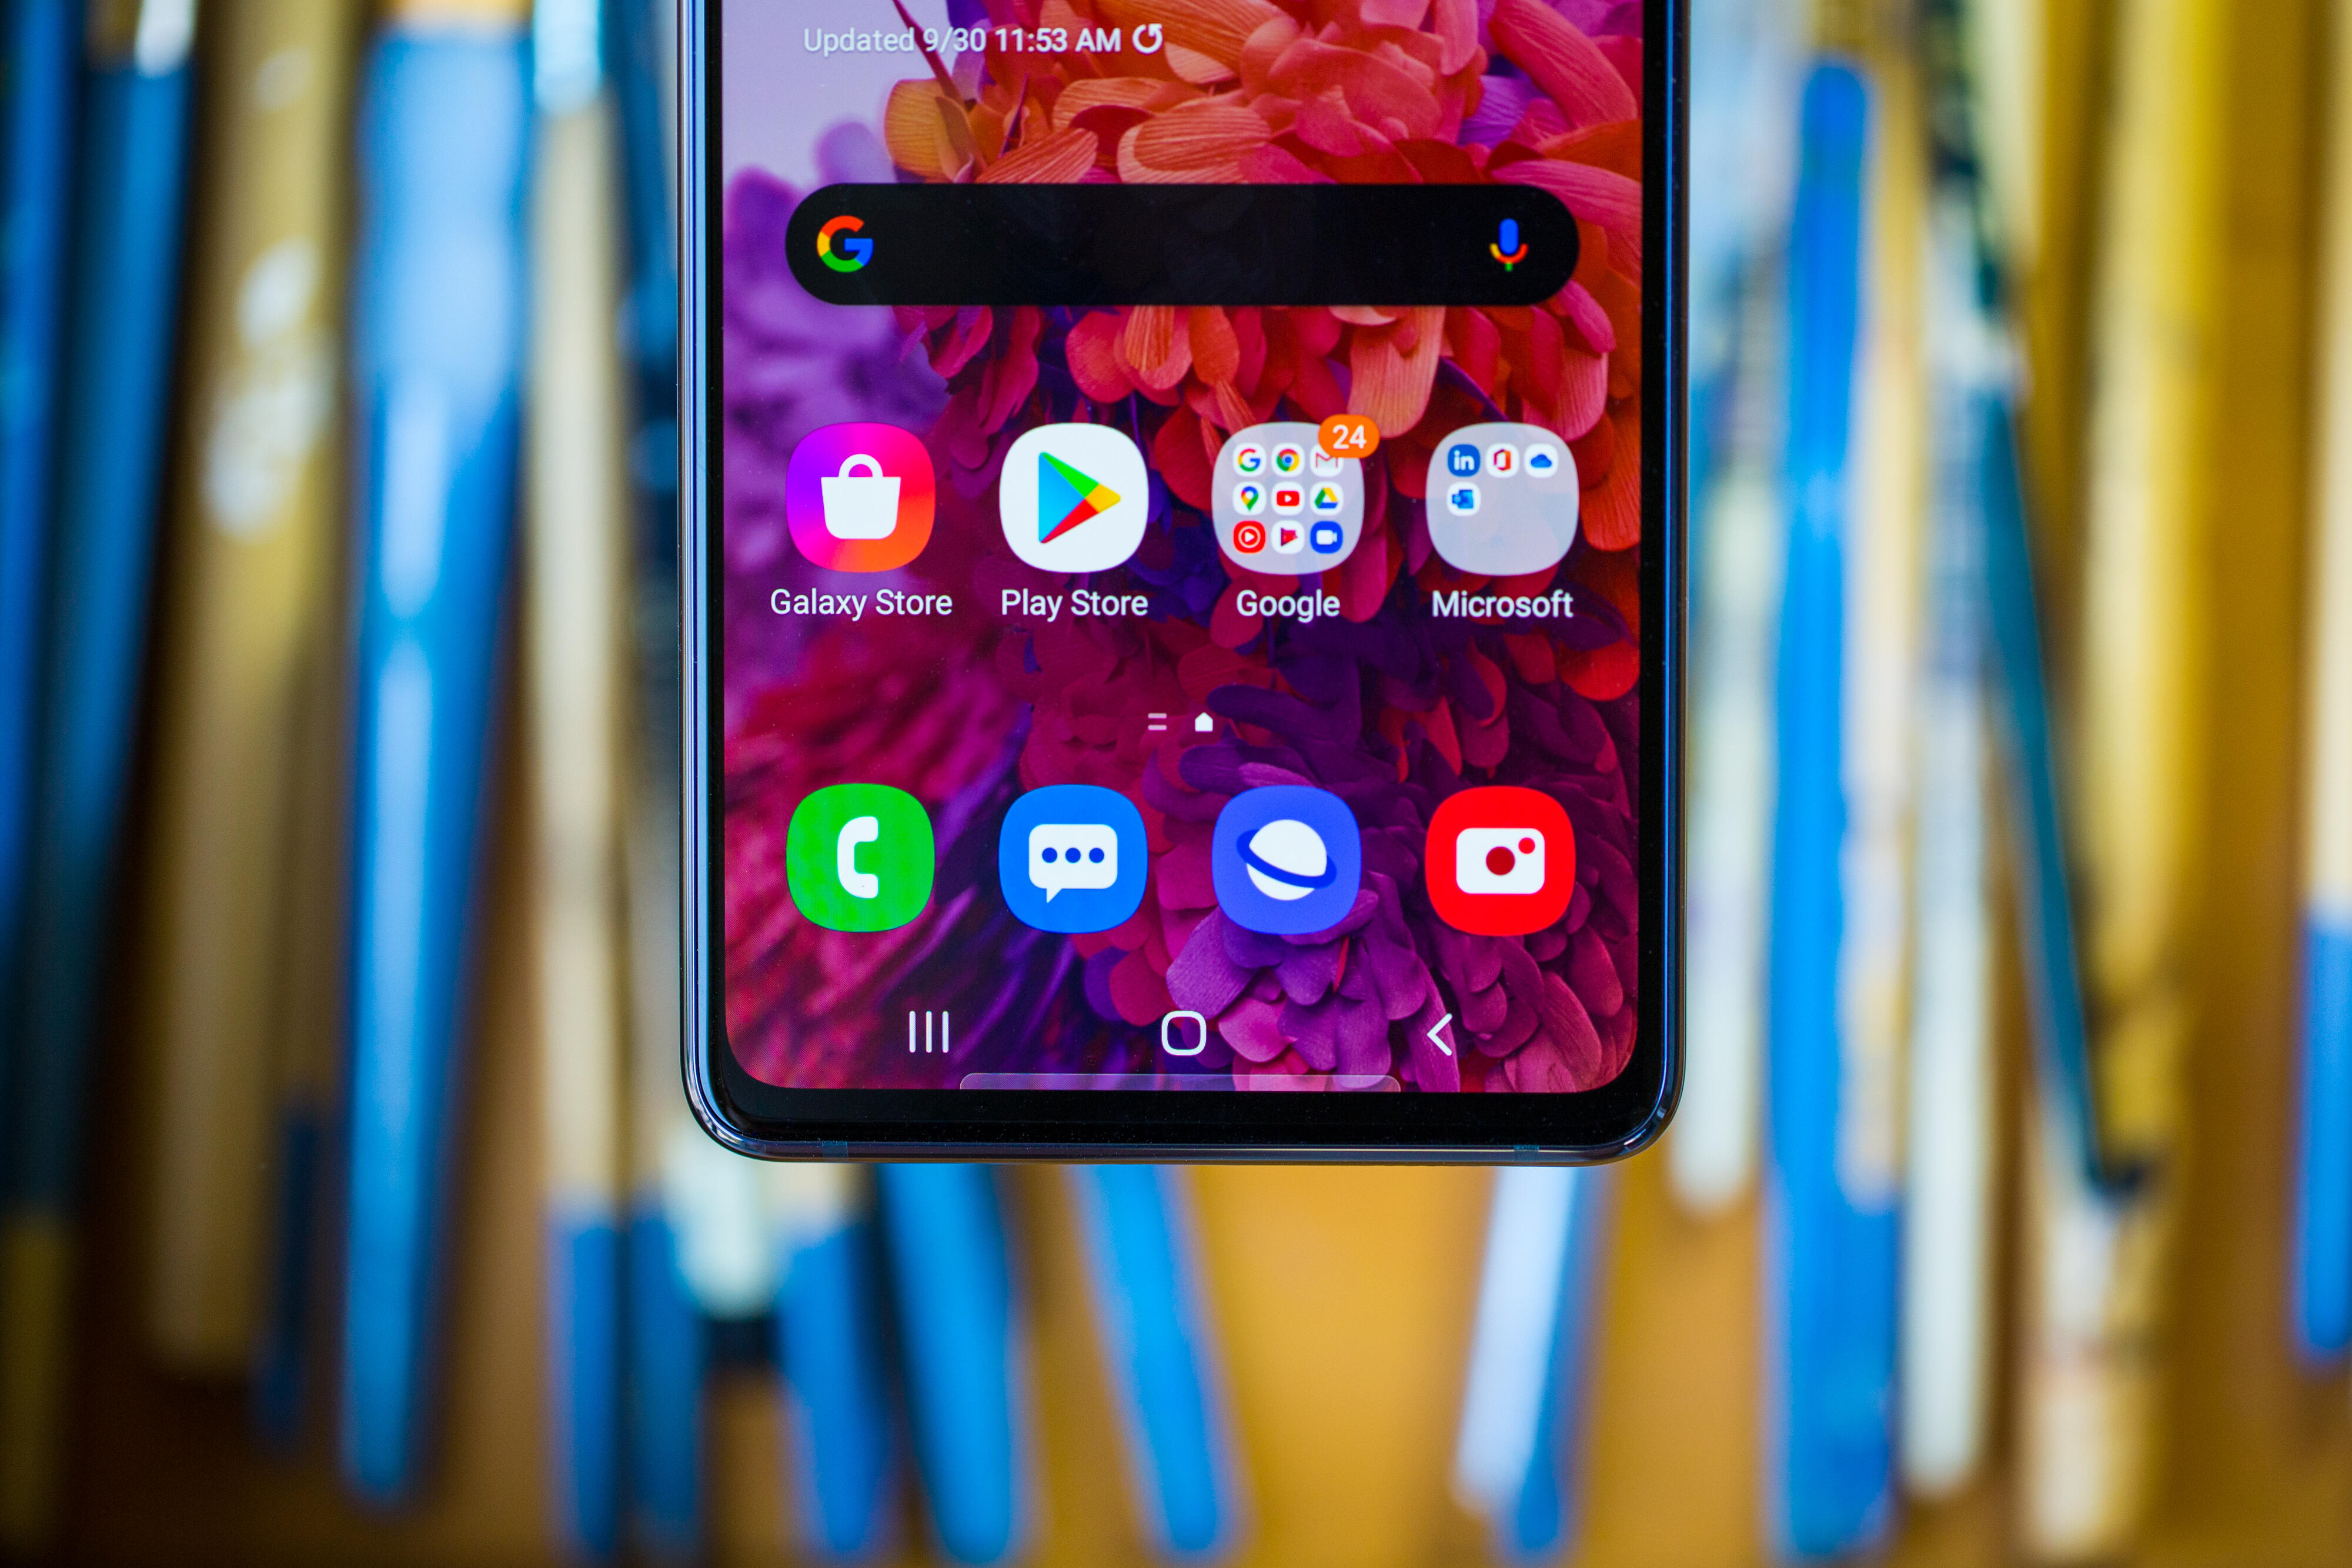 Samsung Galaxy S20 FE: Free at Verizon right now, but check the math first